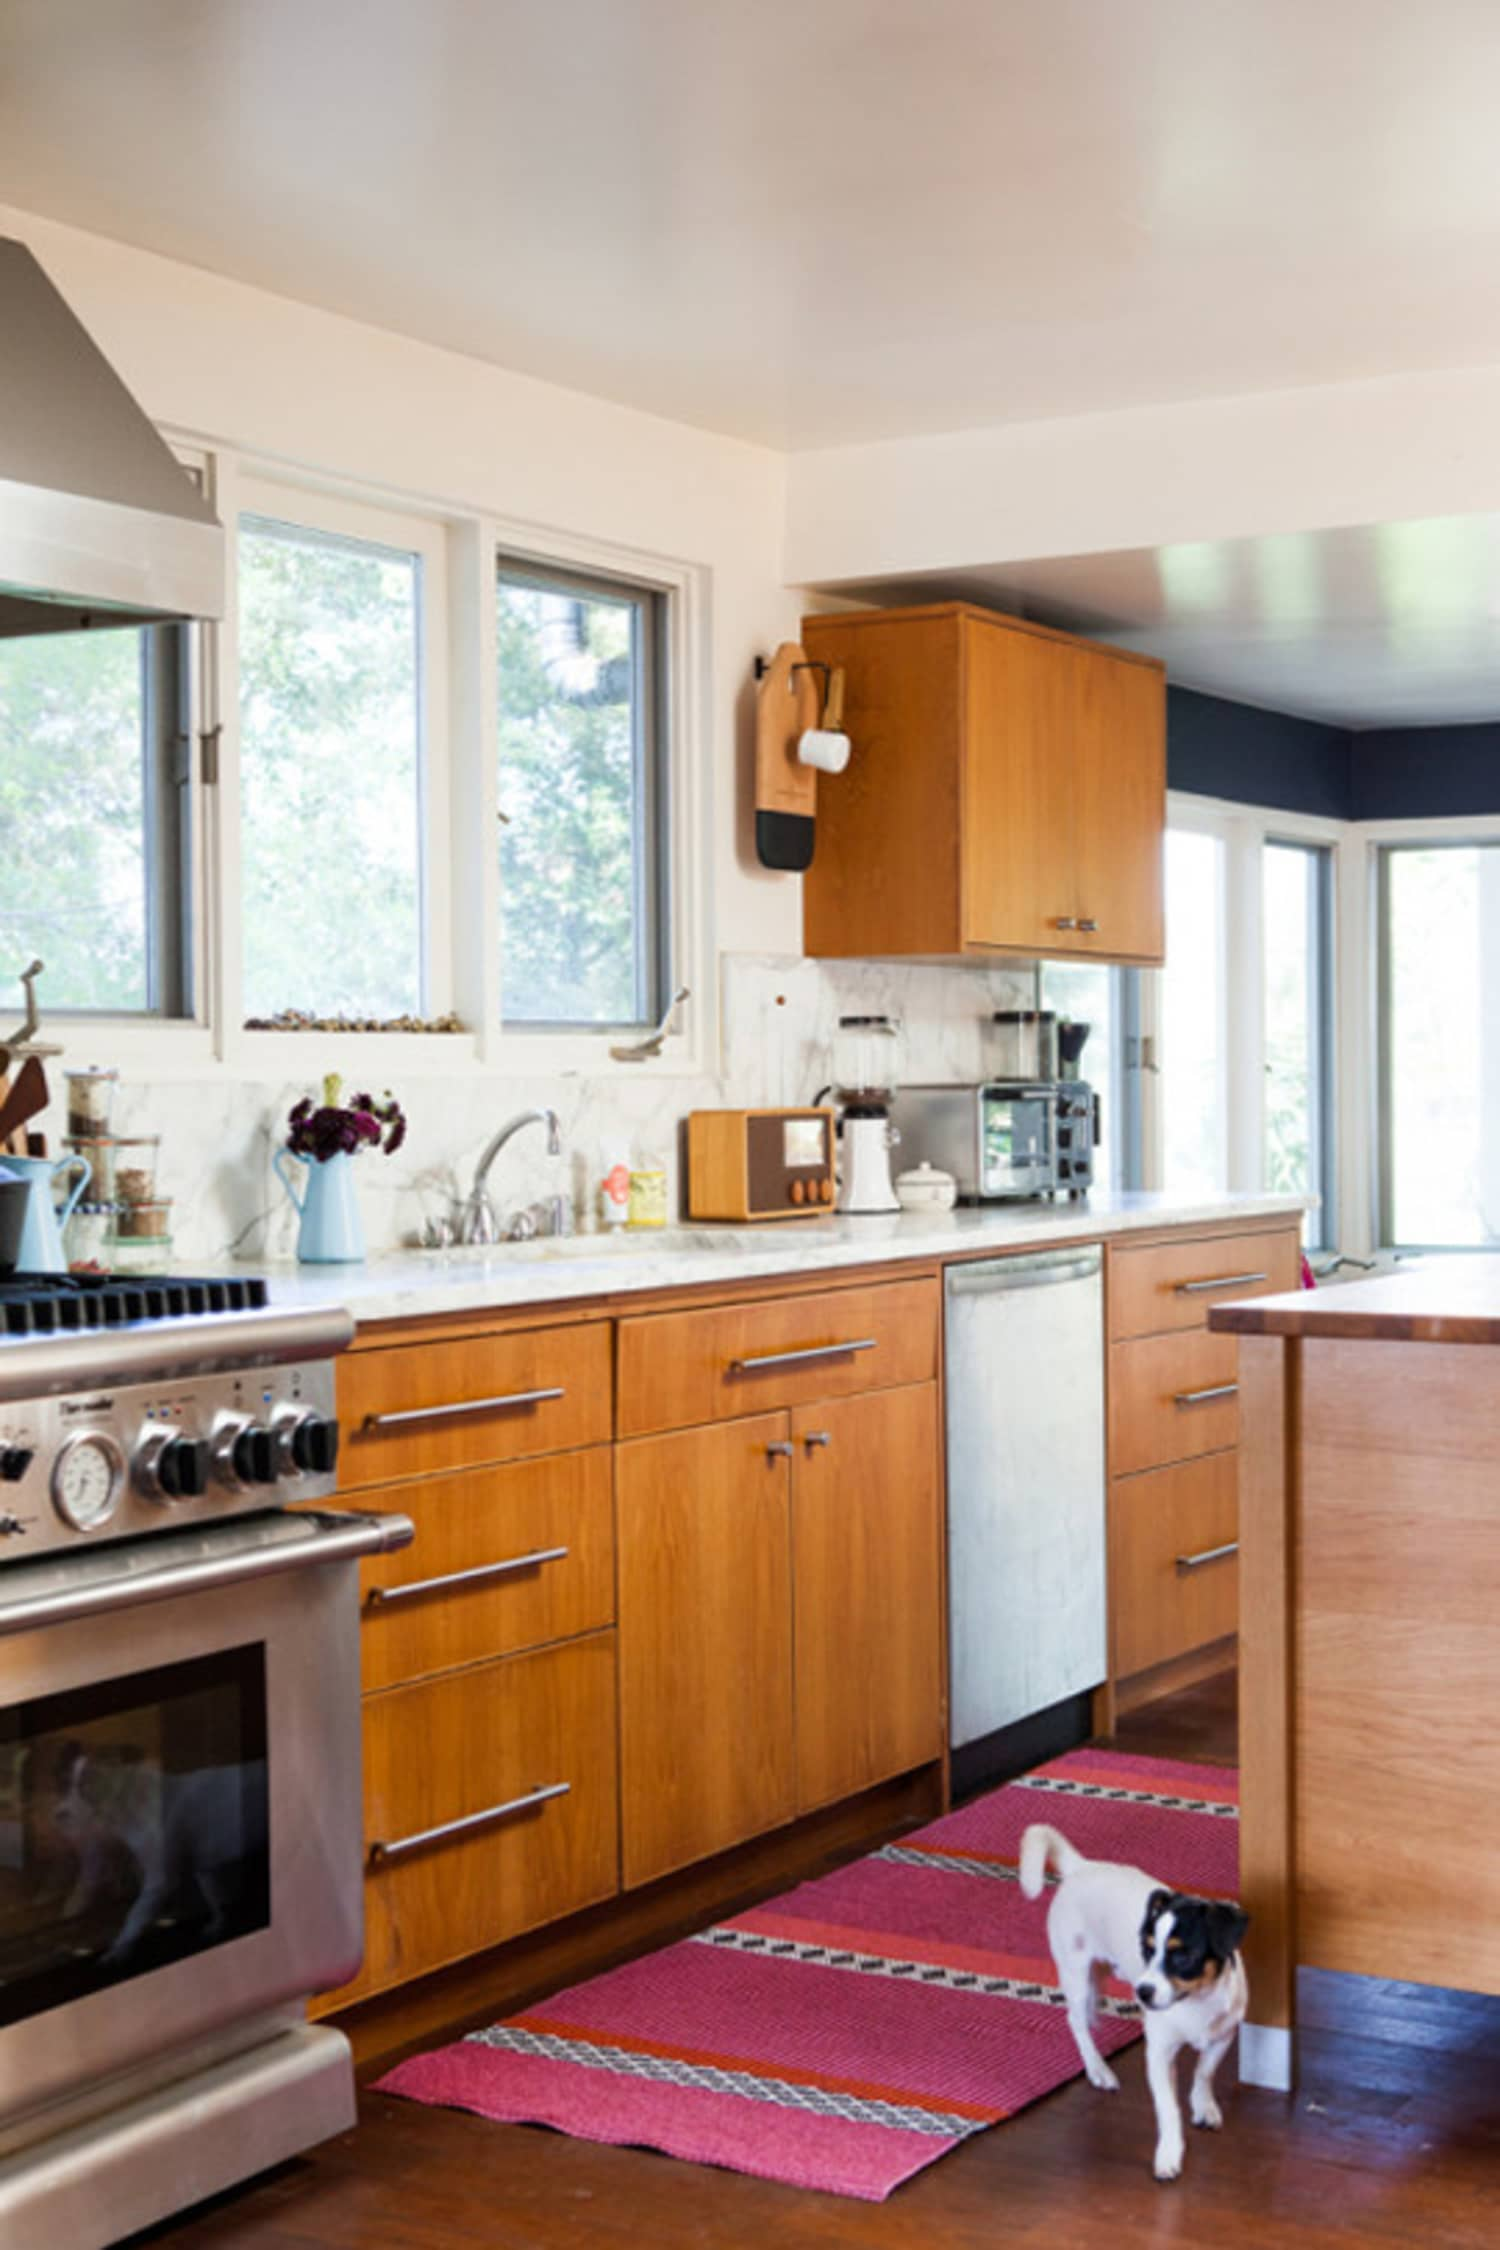 10 Easy, Low-Budget Ways to Improve Any Kitchen (Even a Rental!)